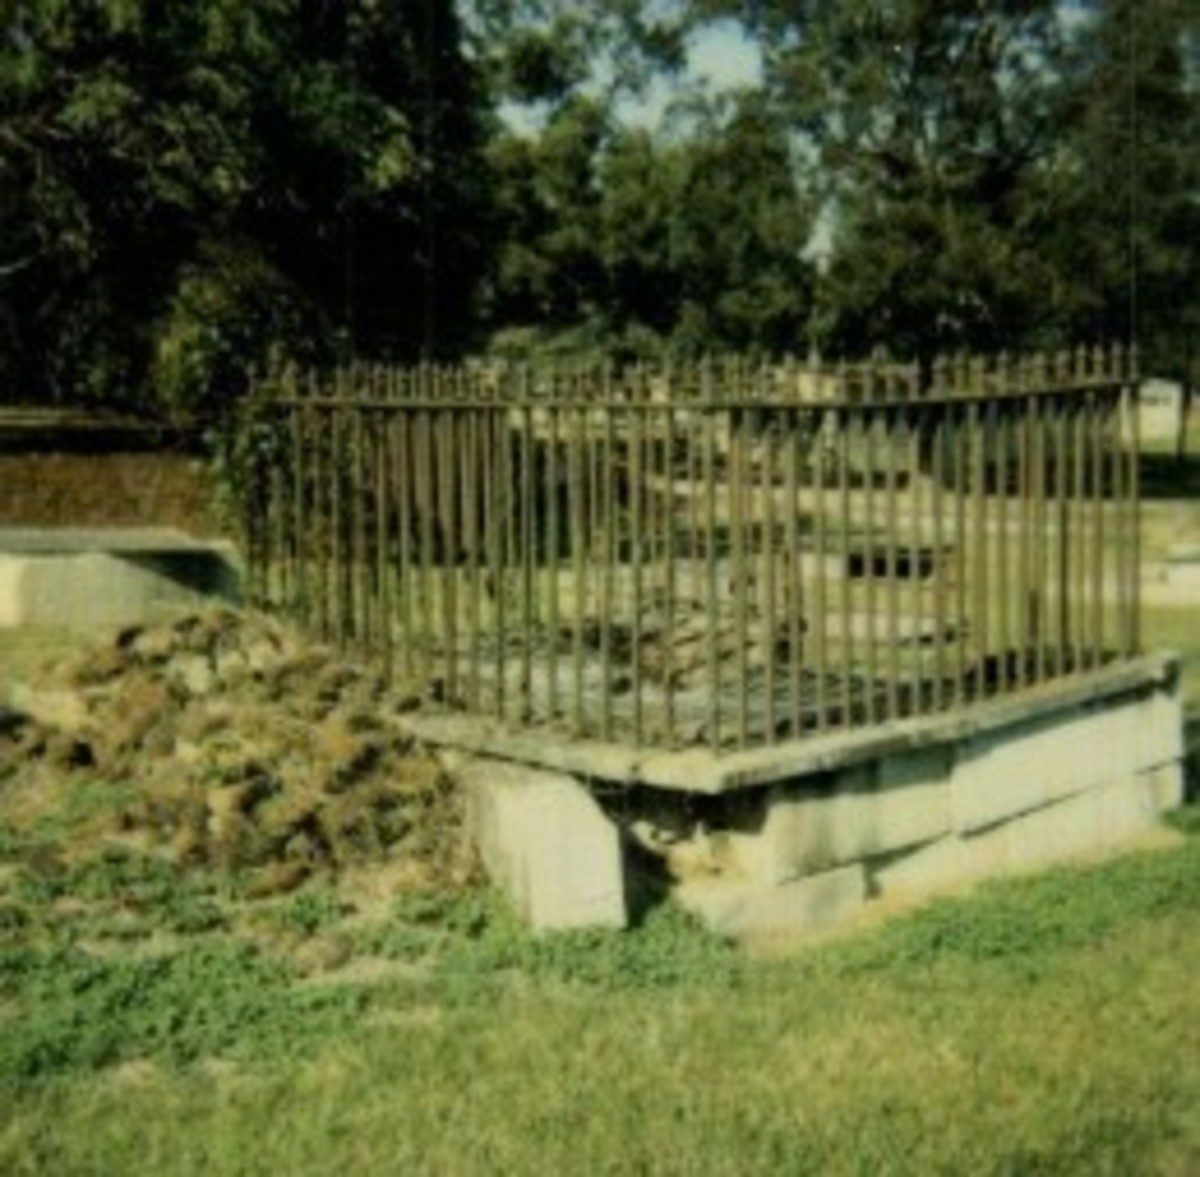 One of the graves in the Boundary Street Cemetery In Newberry South Carolina